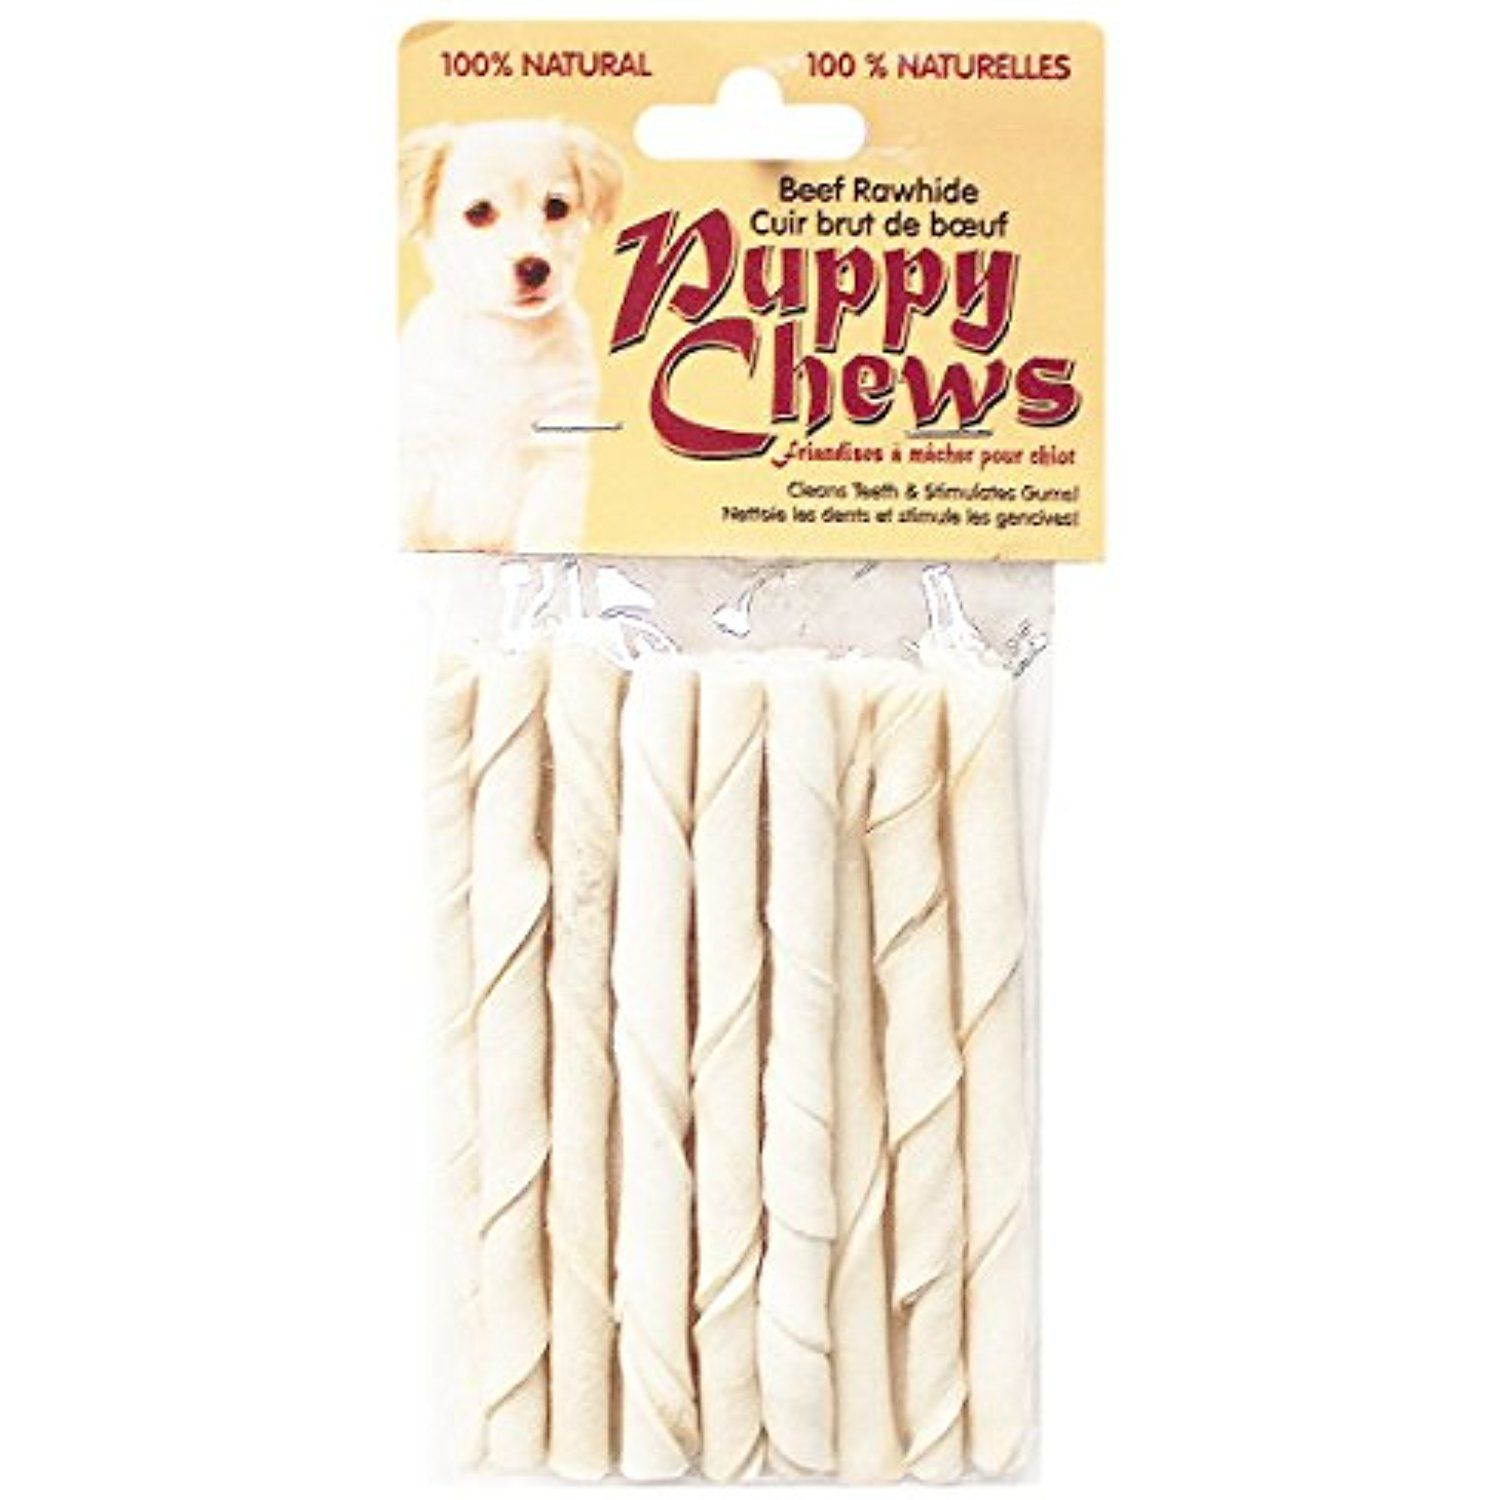 Funchew Pp 010871 Natural Flavor 5 Rawhide Puppy Or Small Dog